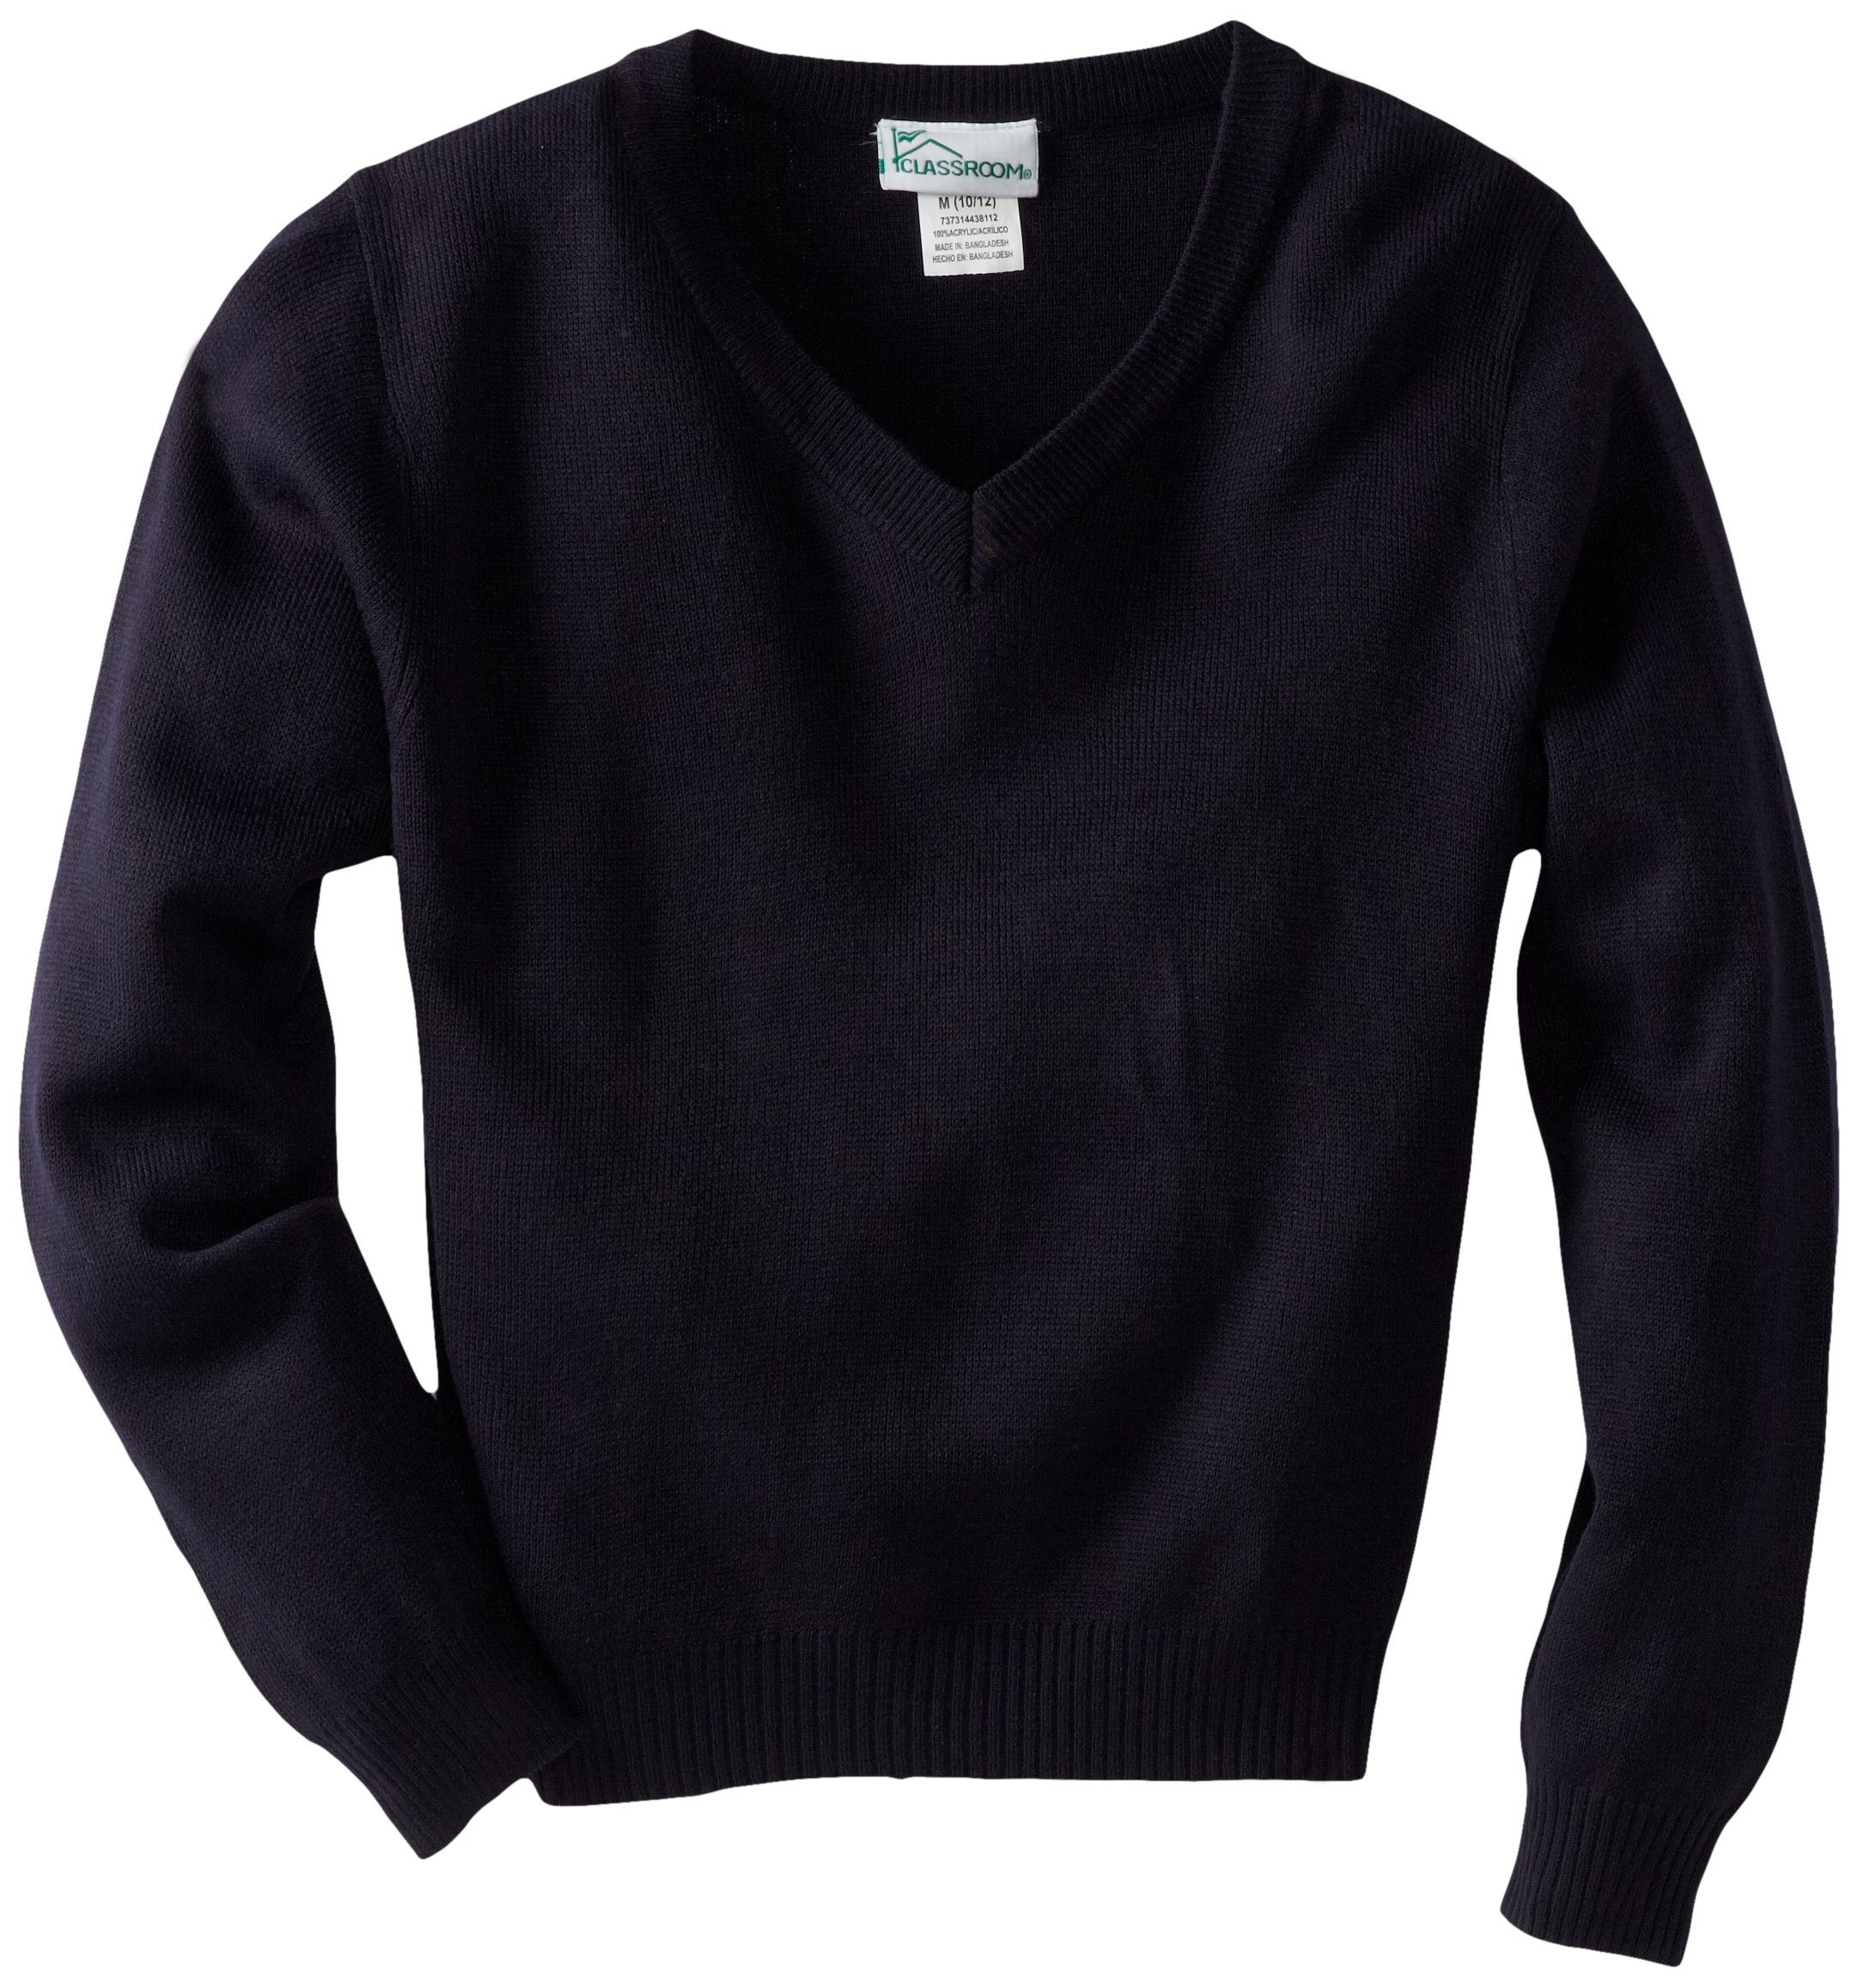 CLASSROOM Big Boys' Uniform Long Sleeve V-Neck Sweater, Dark Navy, X-Large